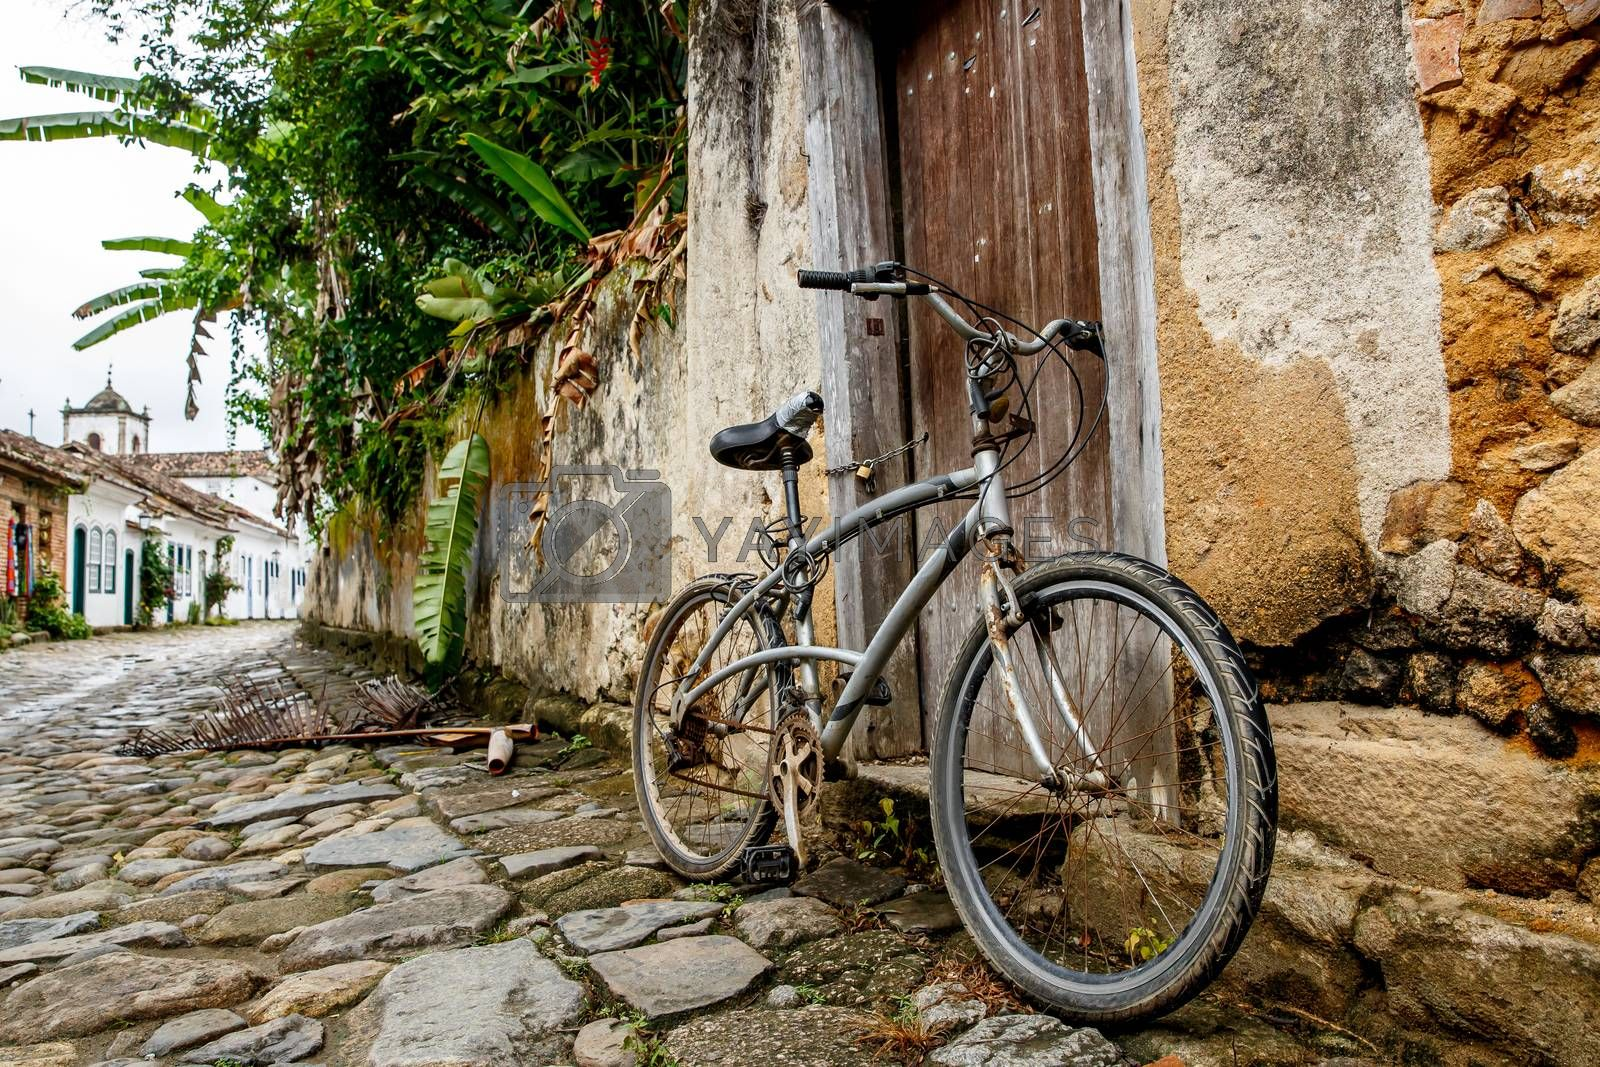 A bicycle parked on an old city street